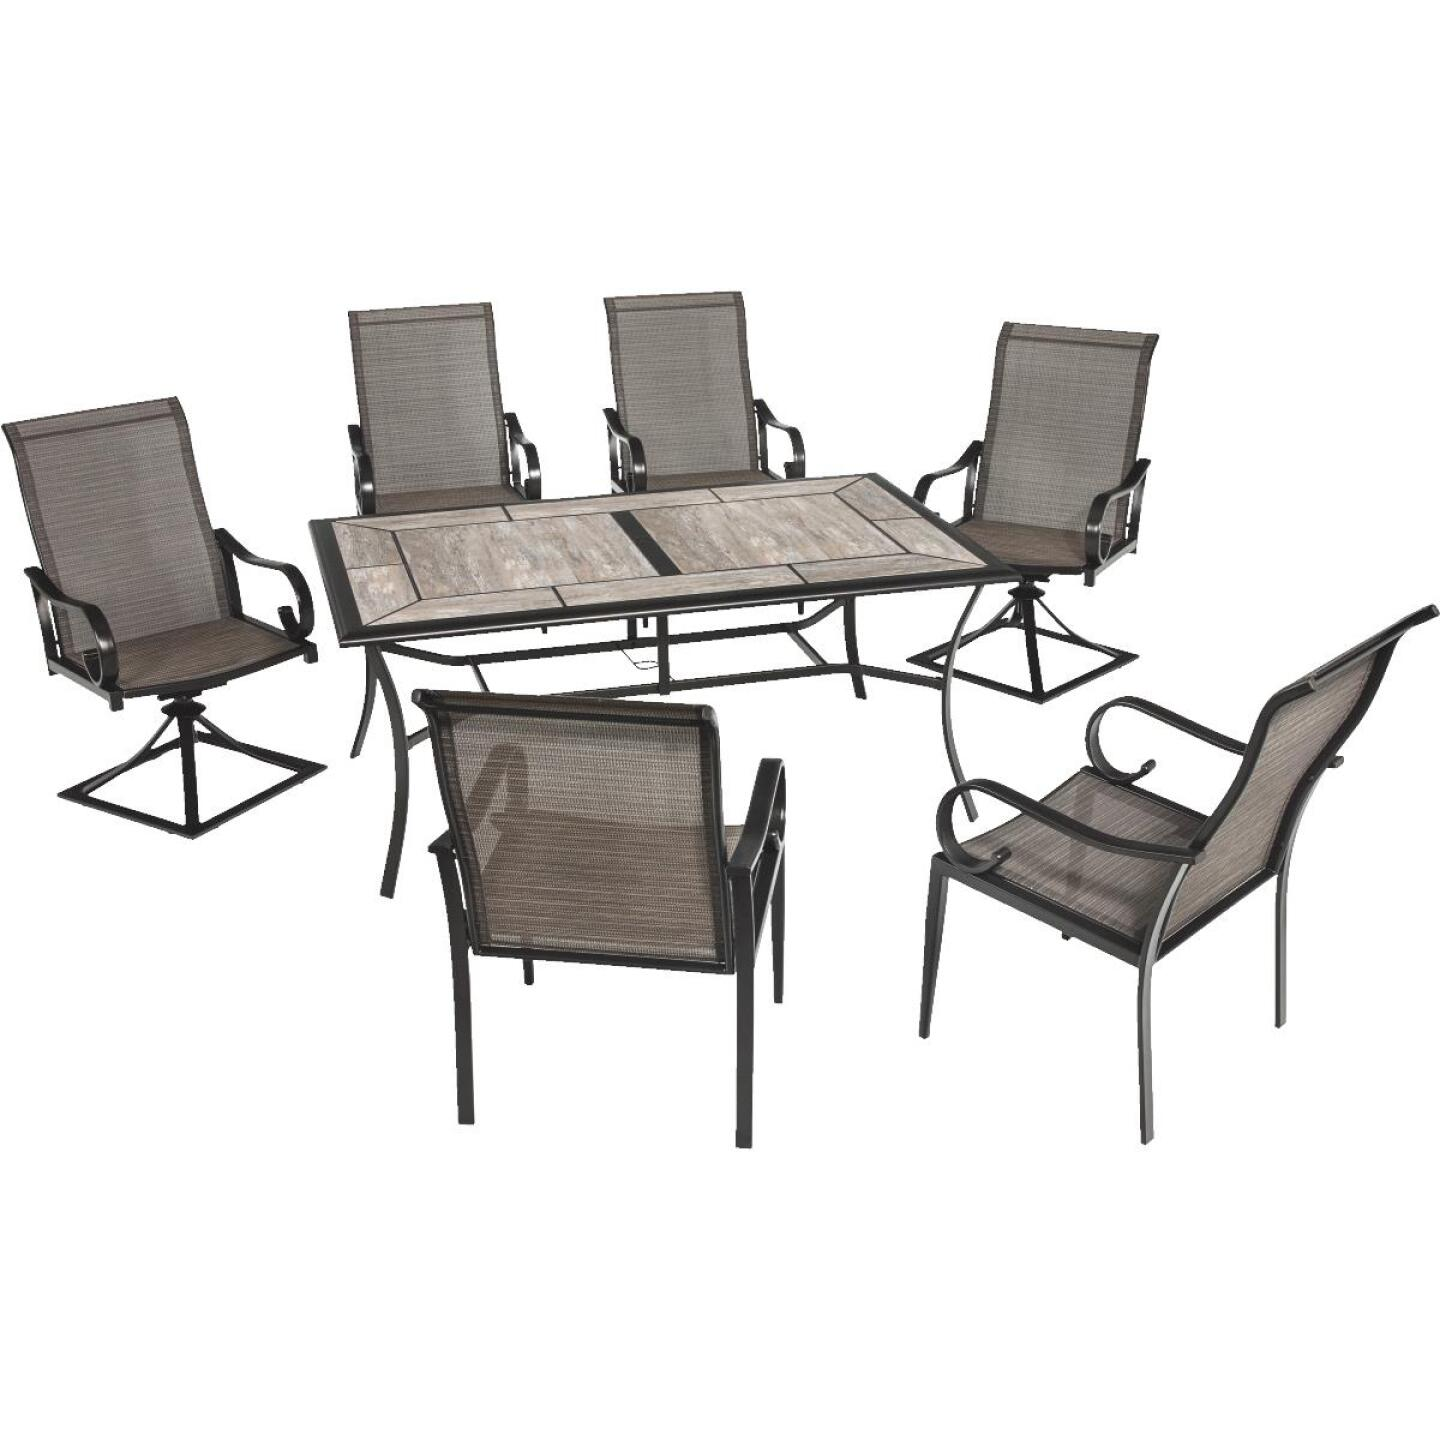 Outdoor Expressions Berkshire 7-Piece Dining Set Image 45